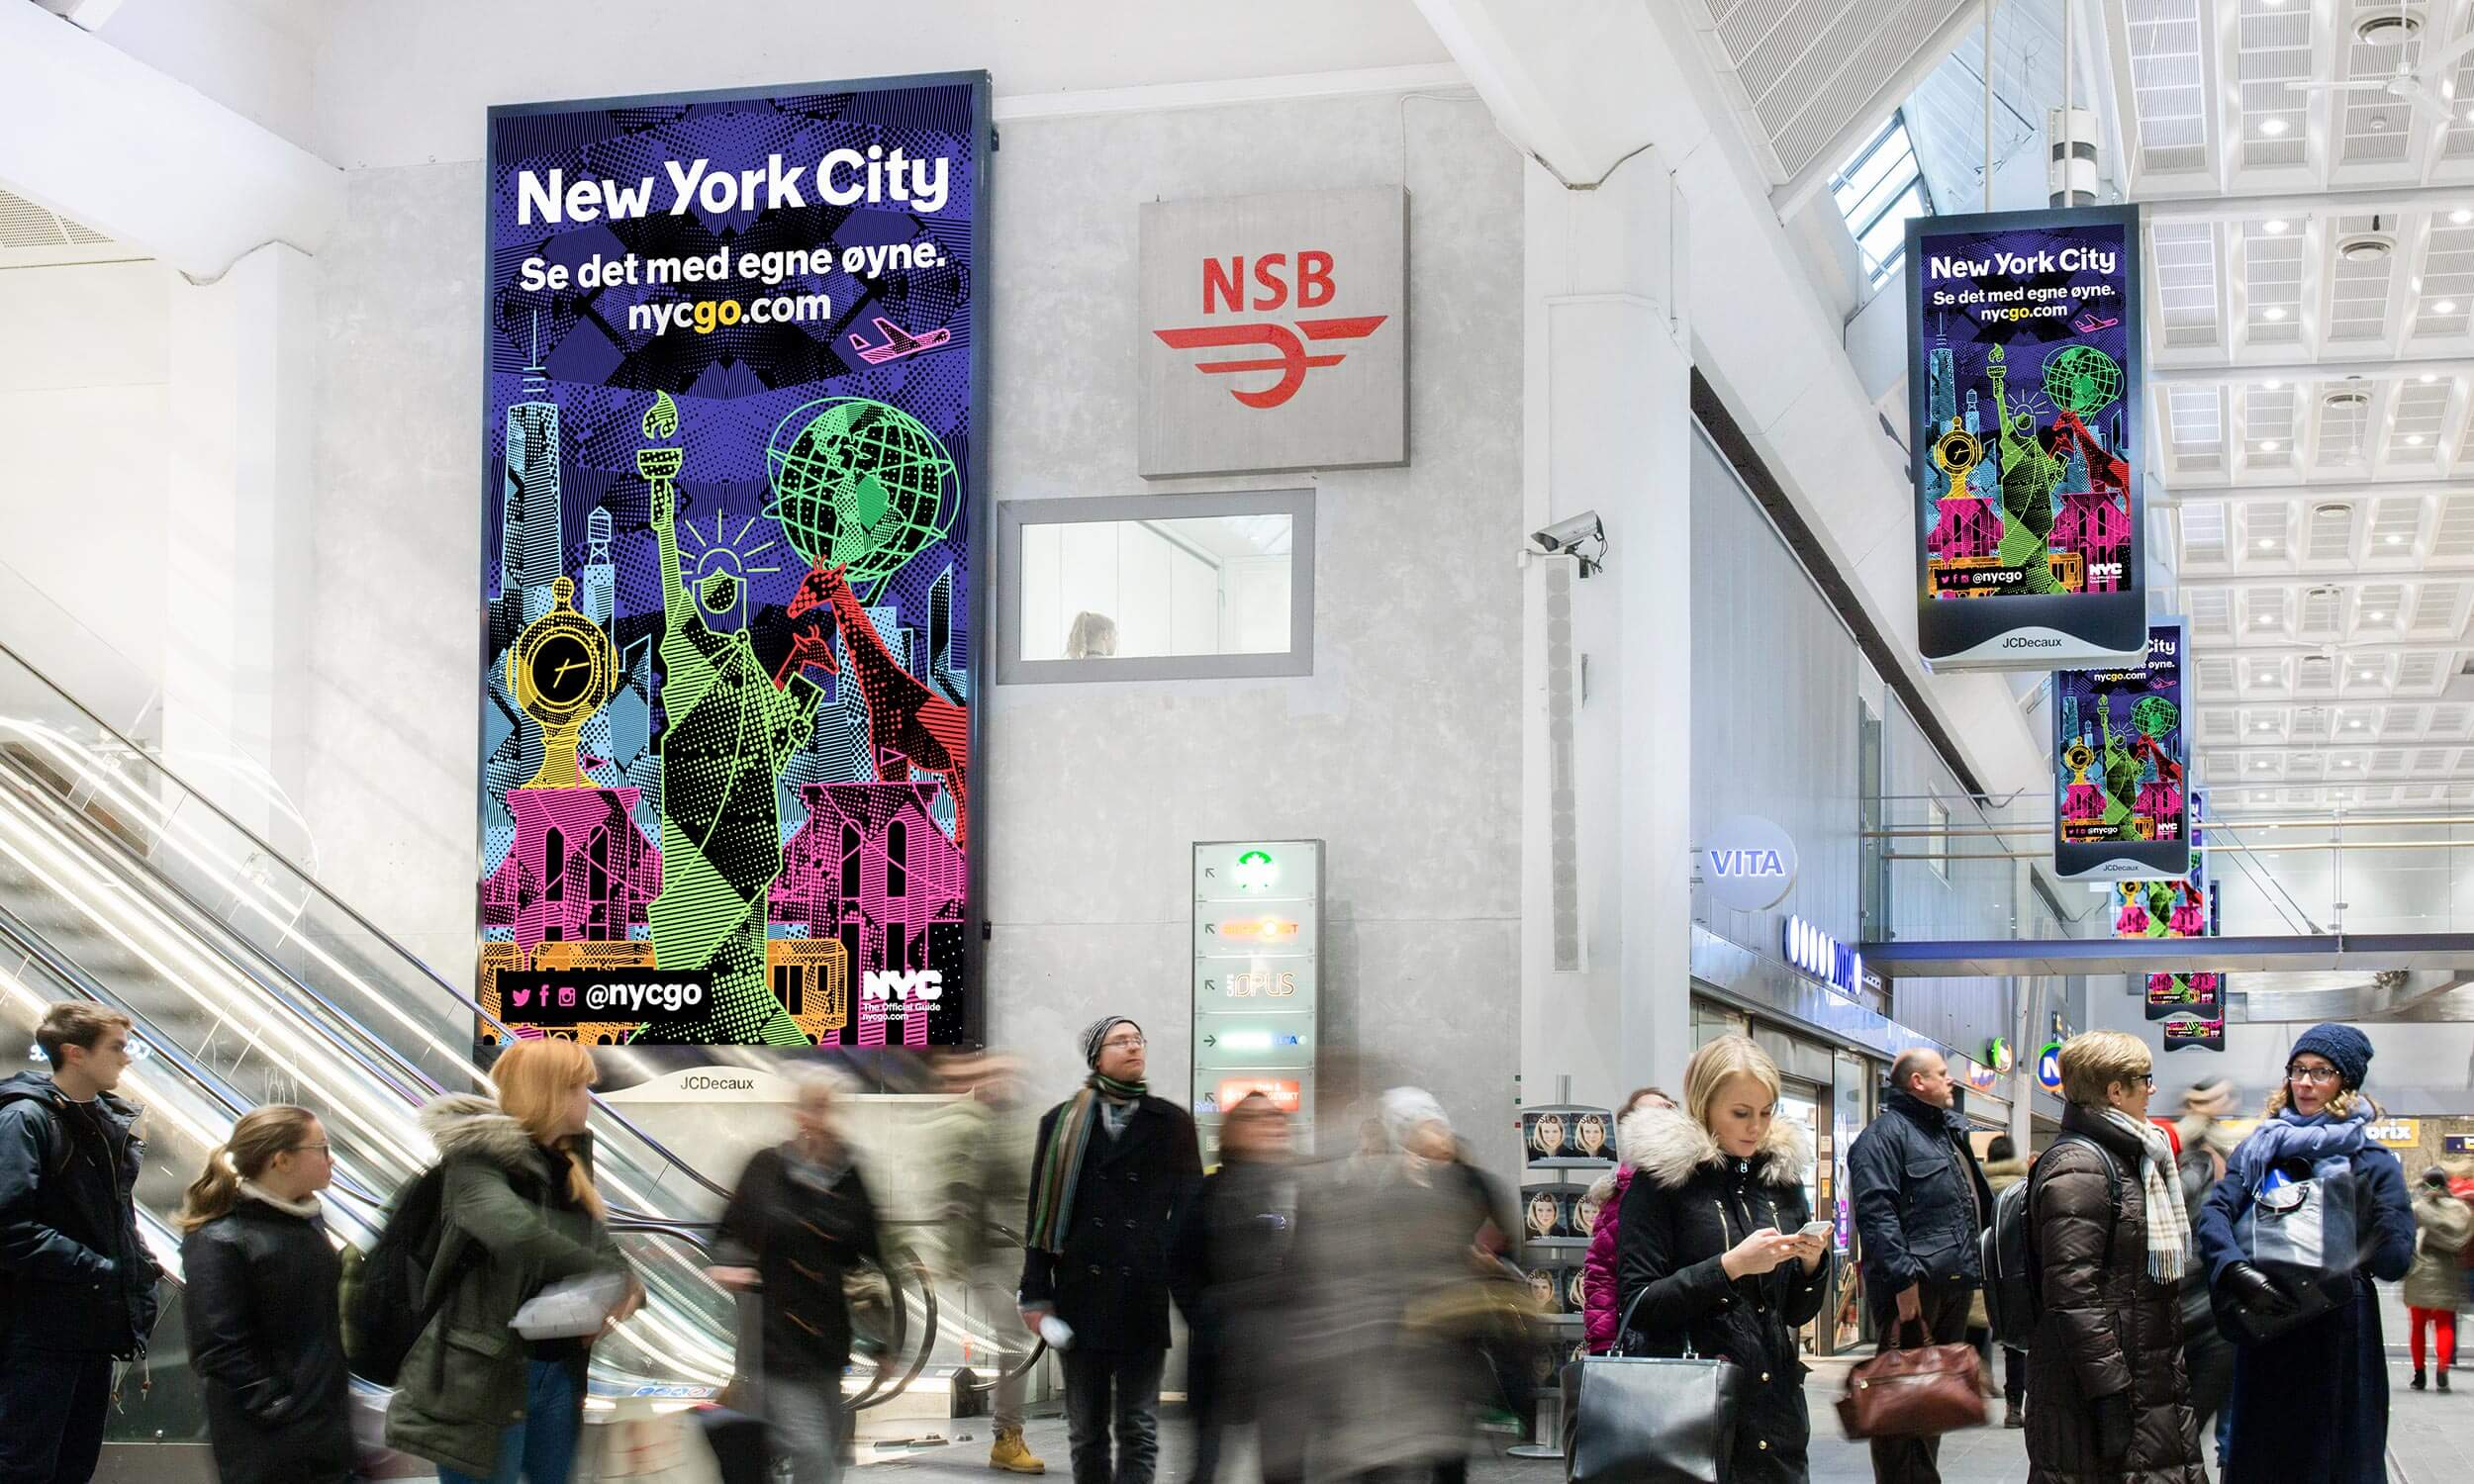 NYC Travel Campaign